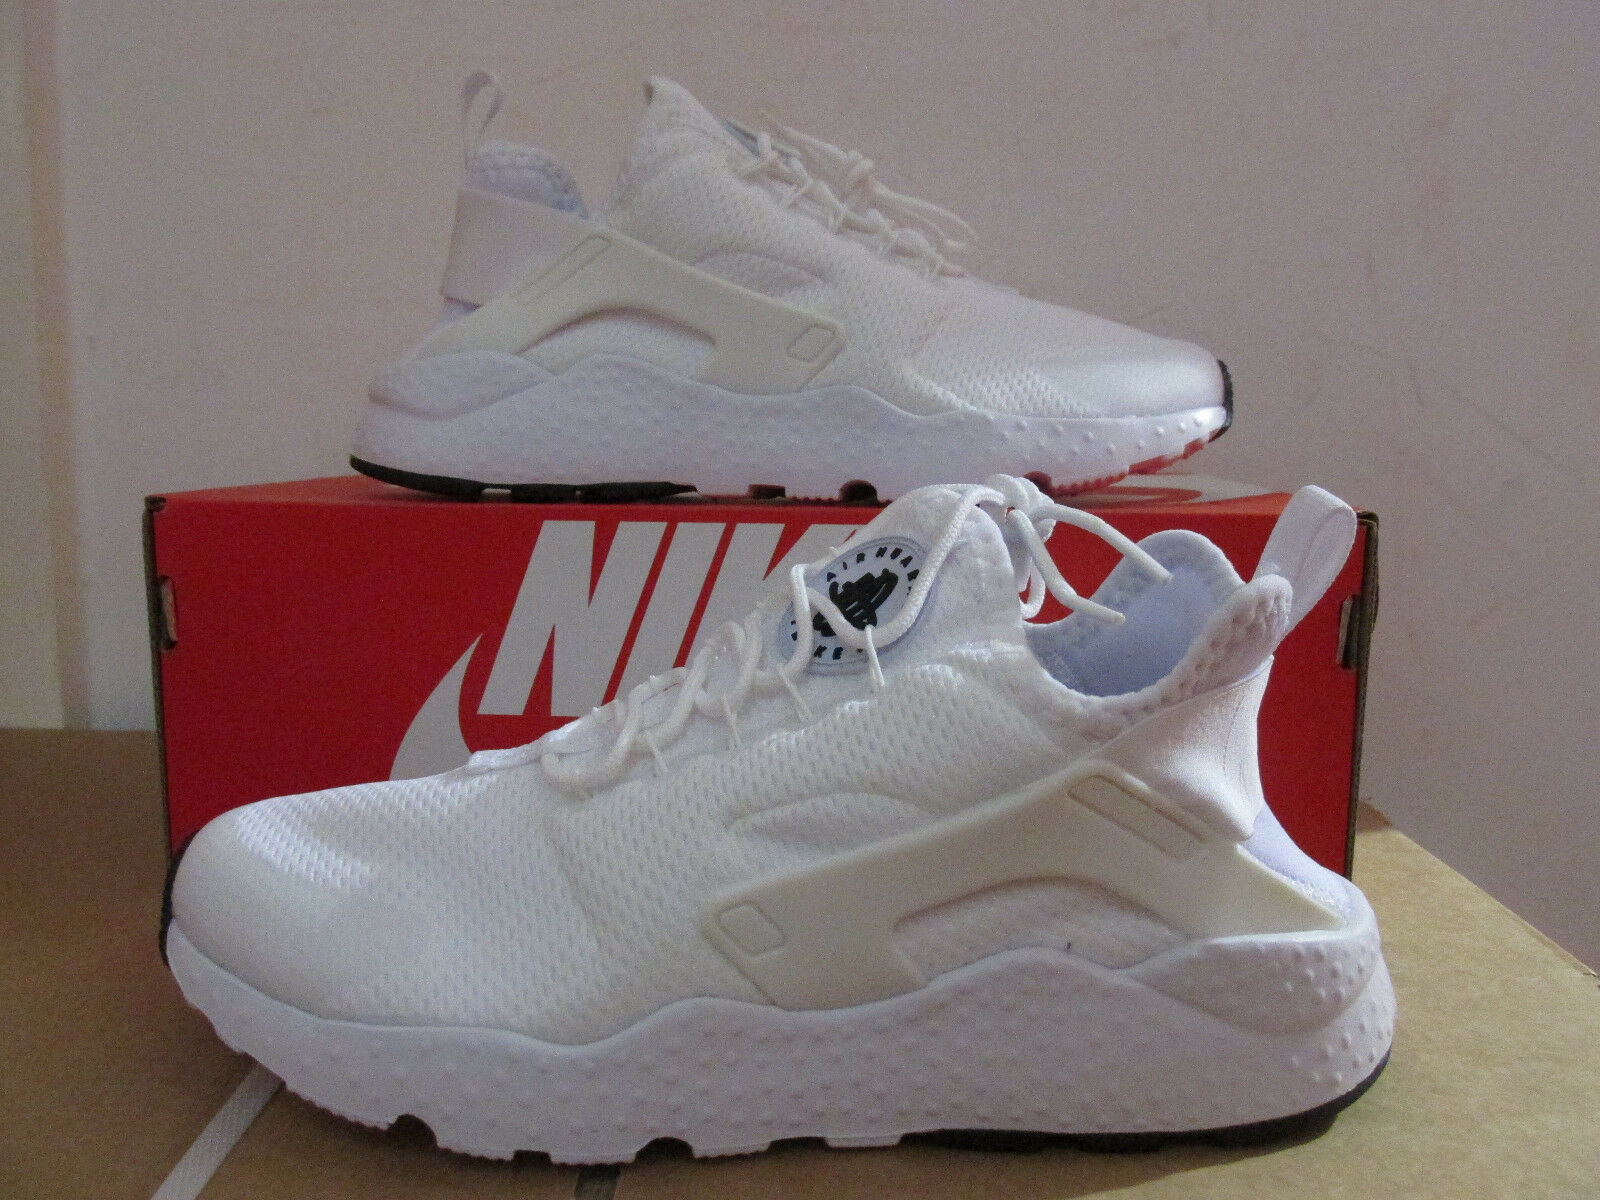 Special limited time Nike Womens Air Huarache Run Ultra Running Trainer 819151 102 Sneakers CLEARANCE